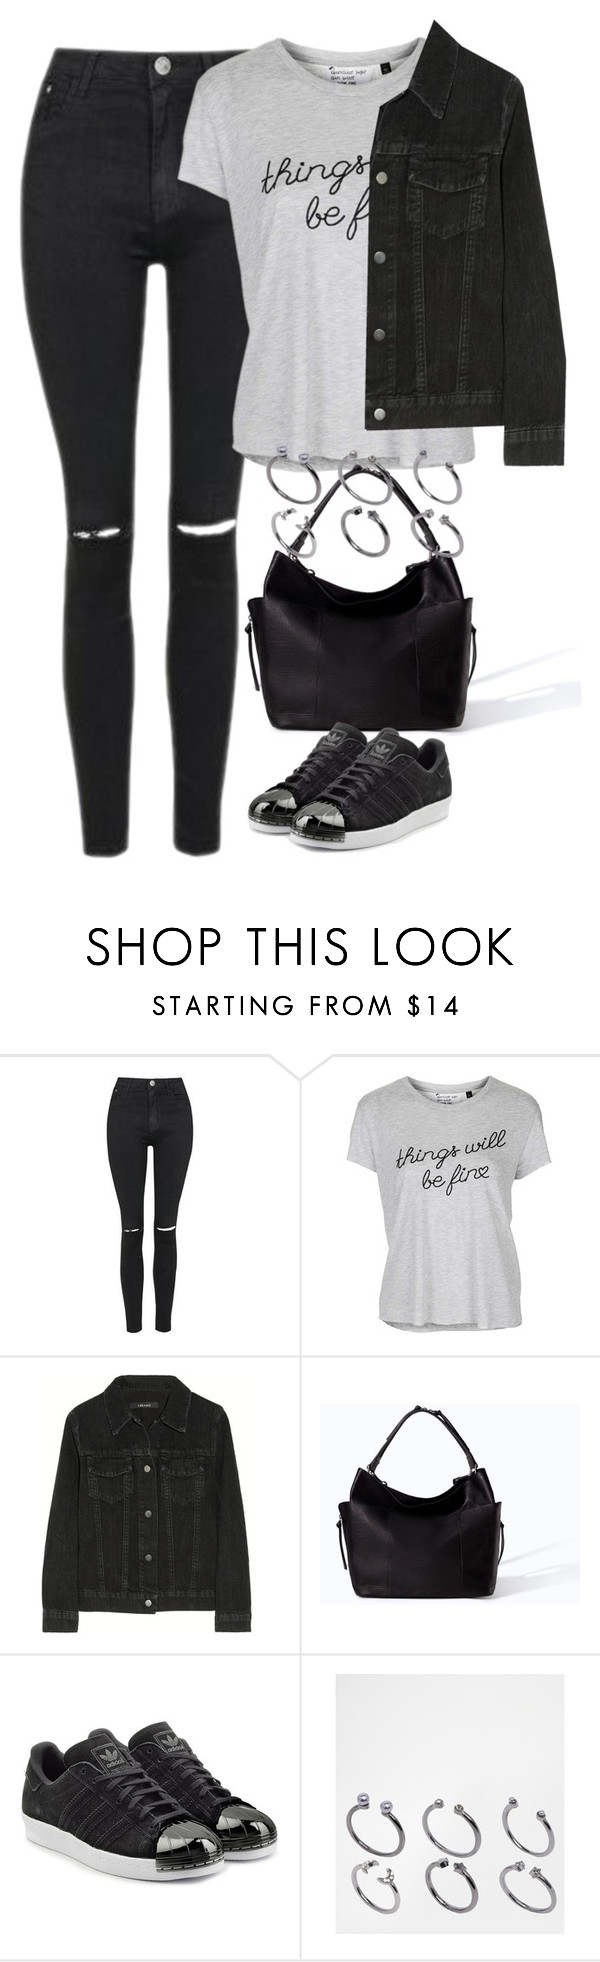 """Untitled #4062"" by keliseblog ❤ liked on Polyvore featuring Topshop, J Brand, Zara, adidas Originals and ASOS"